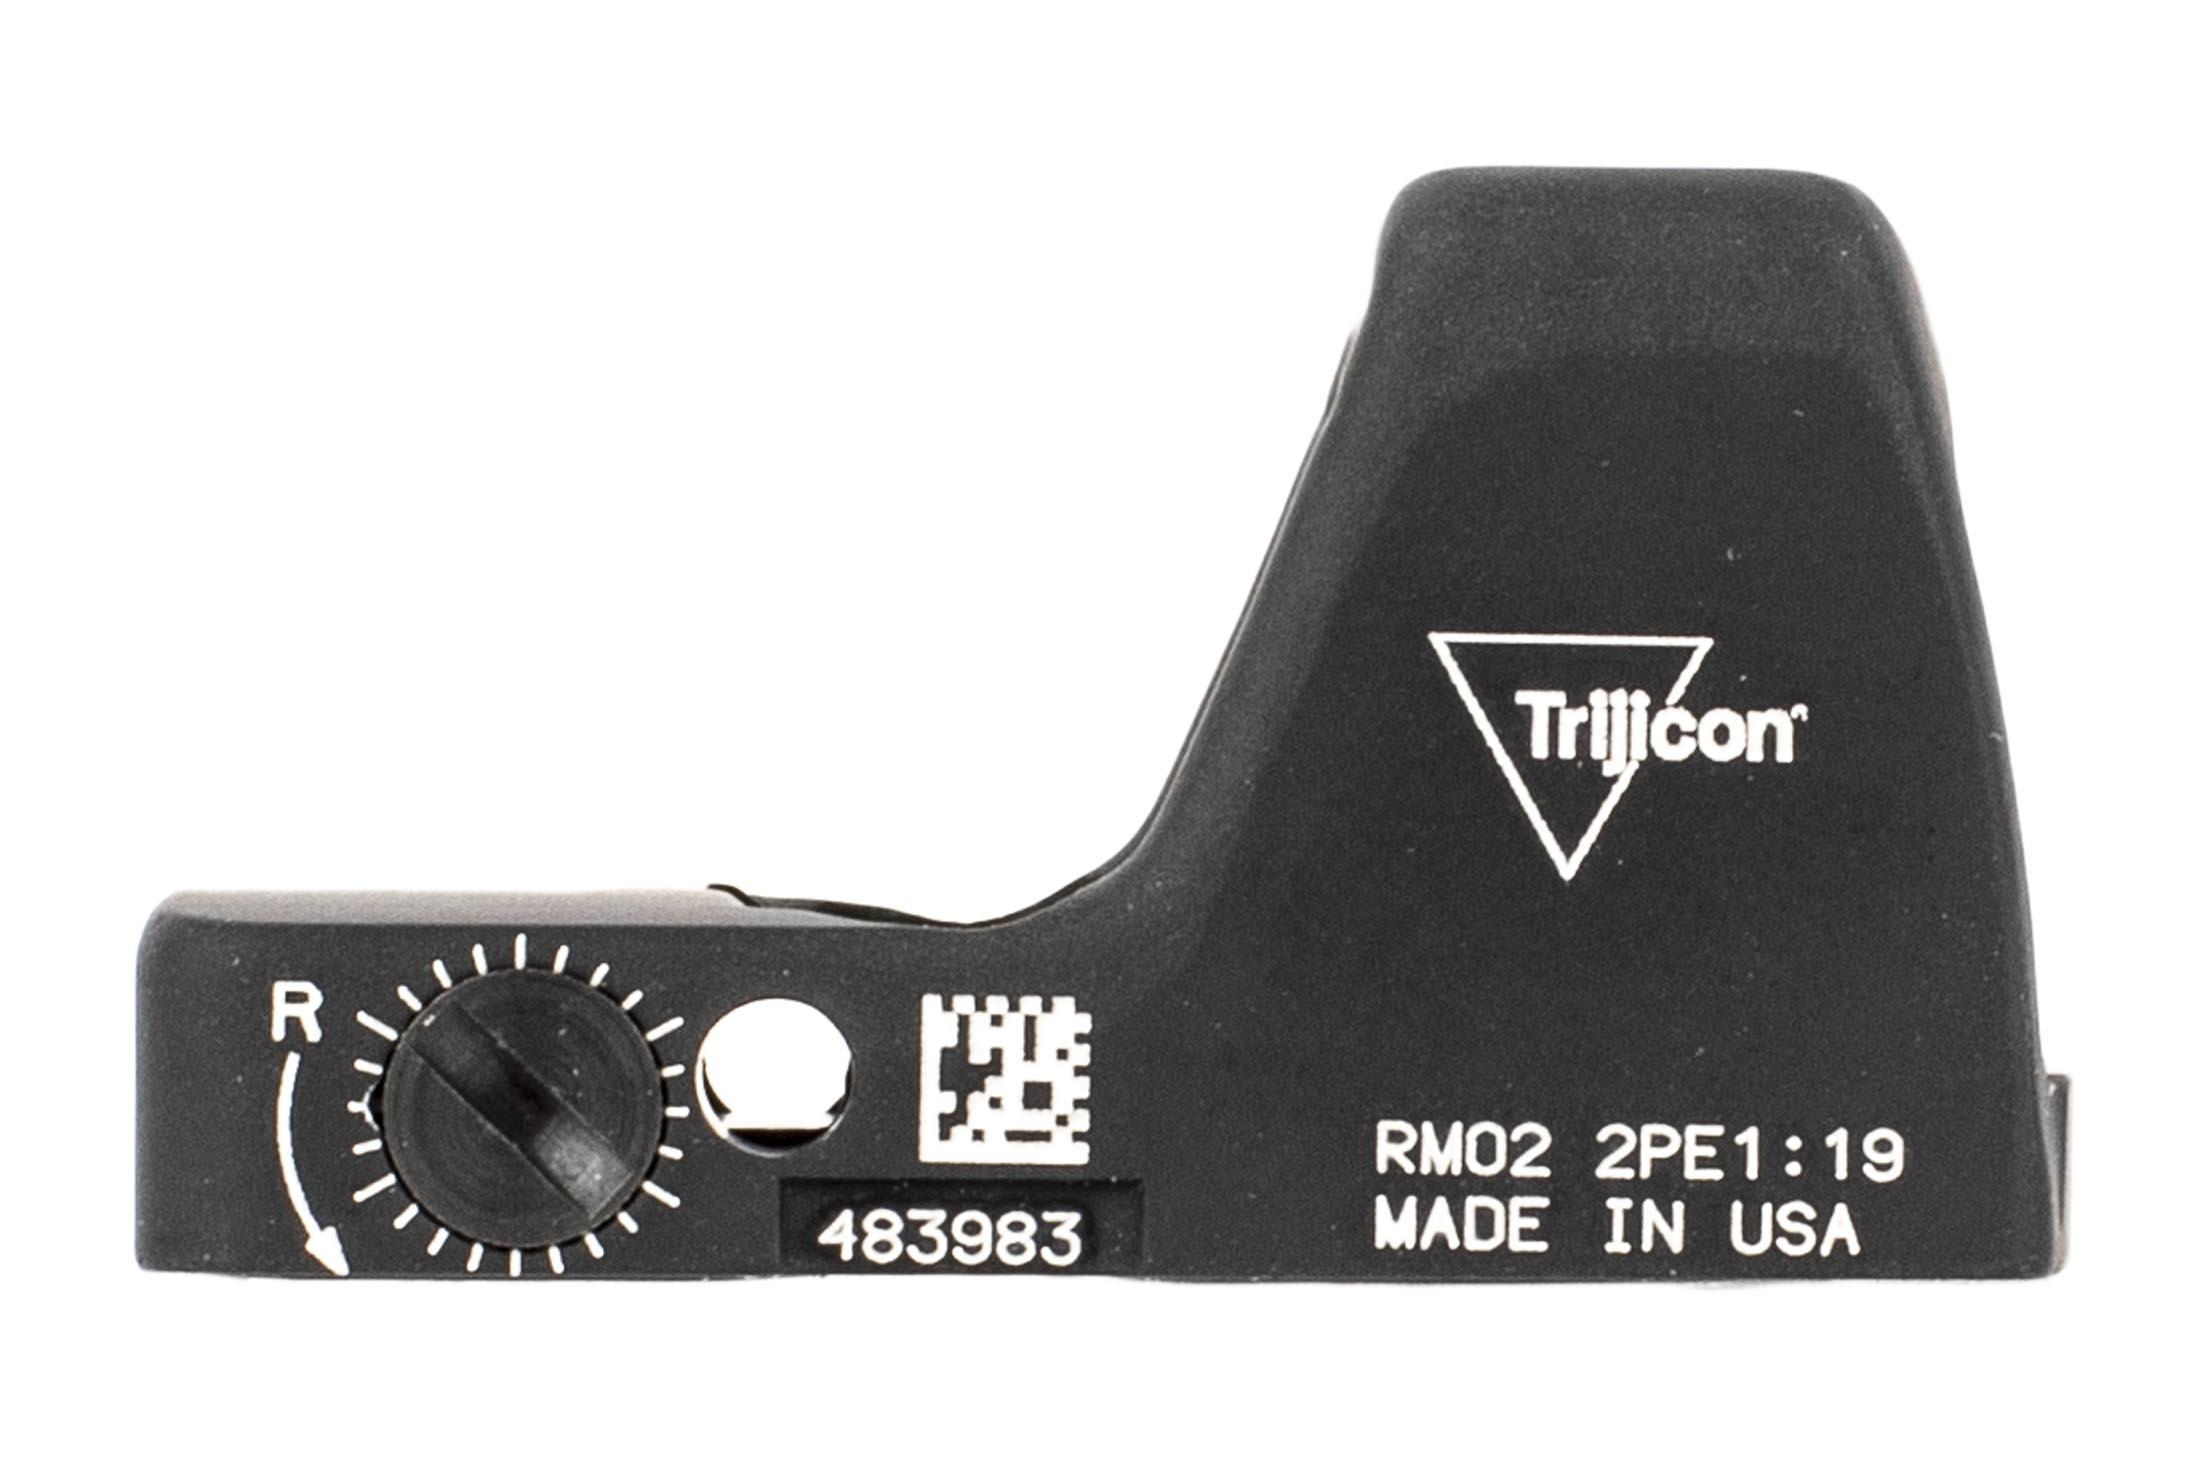 Trijicon Type 2 RMR with Adjustable 6.5 MOA reticle features easy to use side mounted controls and an black finish